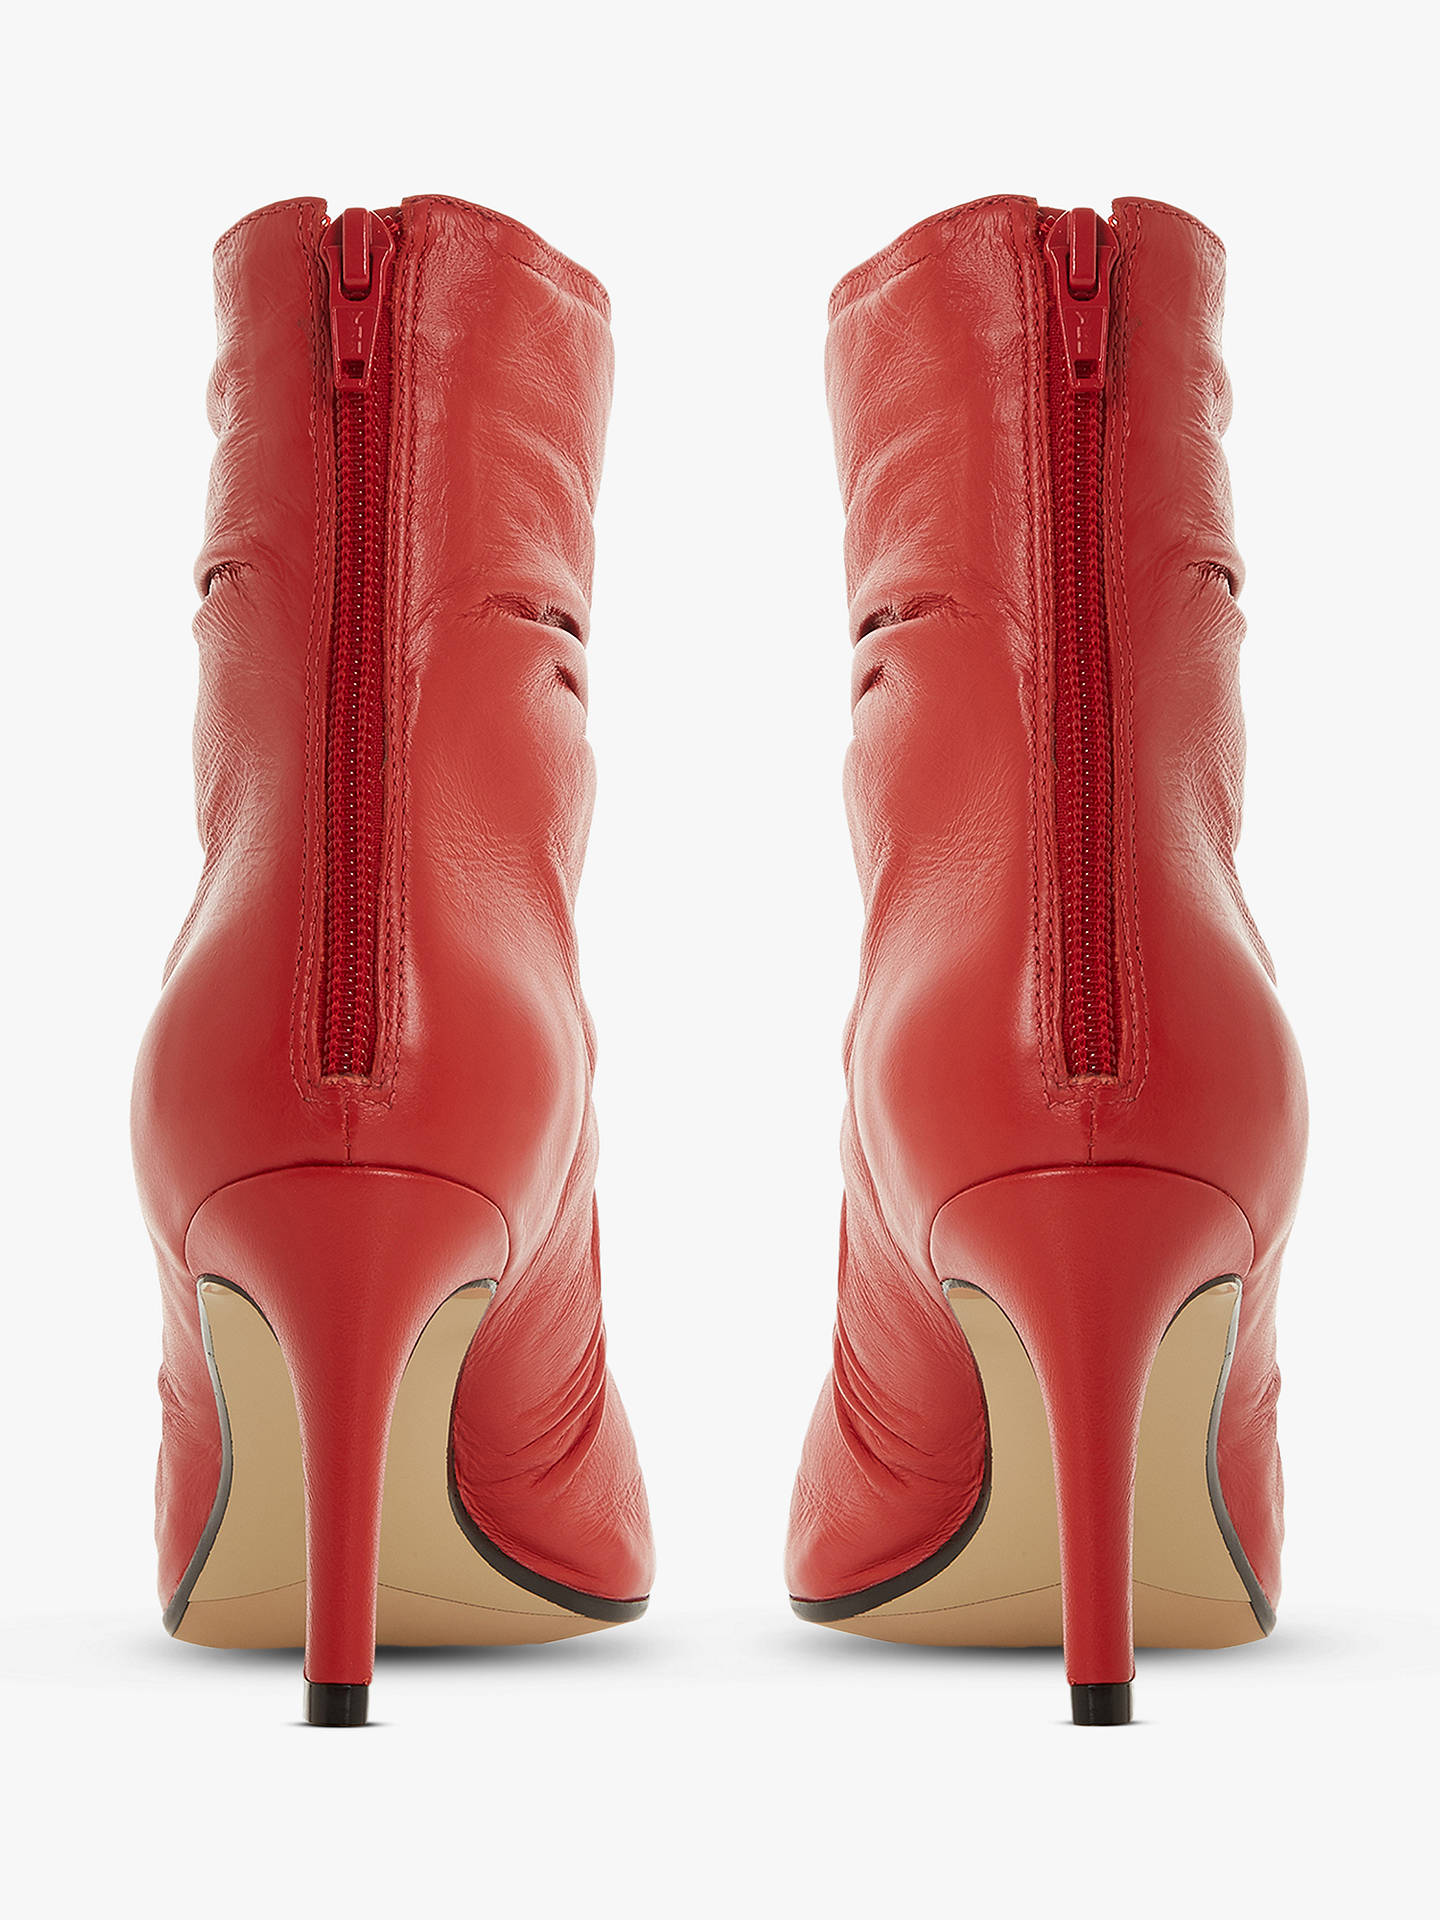 e61df1c3307b Buy Dune Oasis Stiletto Heel Ankle Boots, Red Leather, 5 Online at  johnlewis.